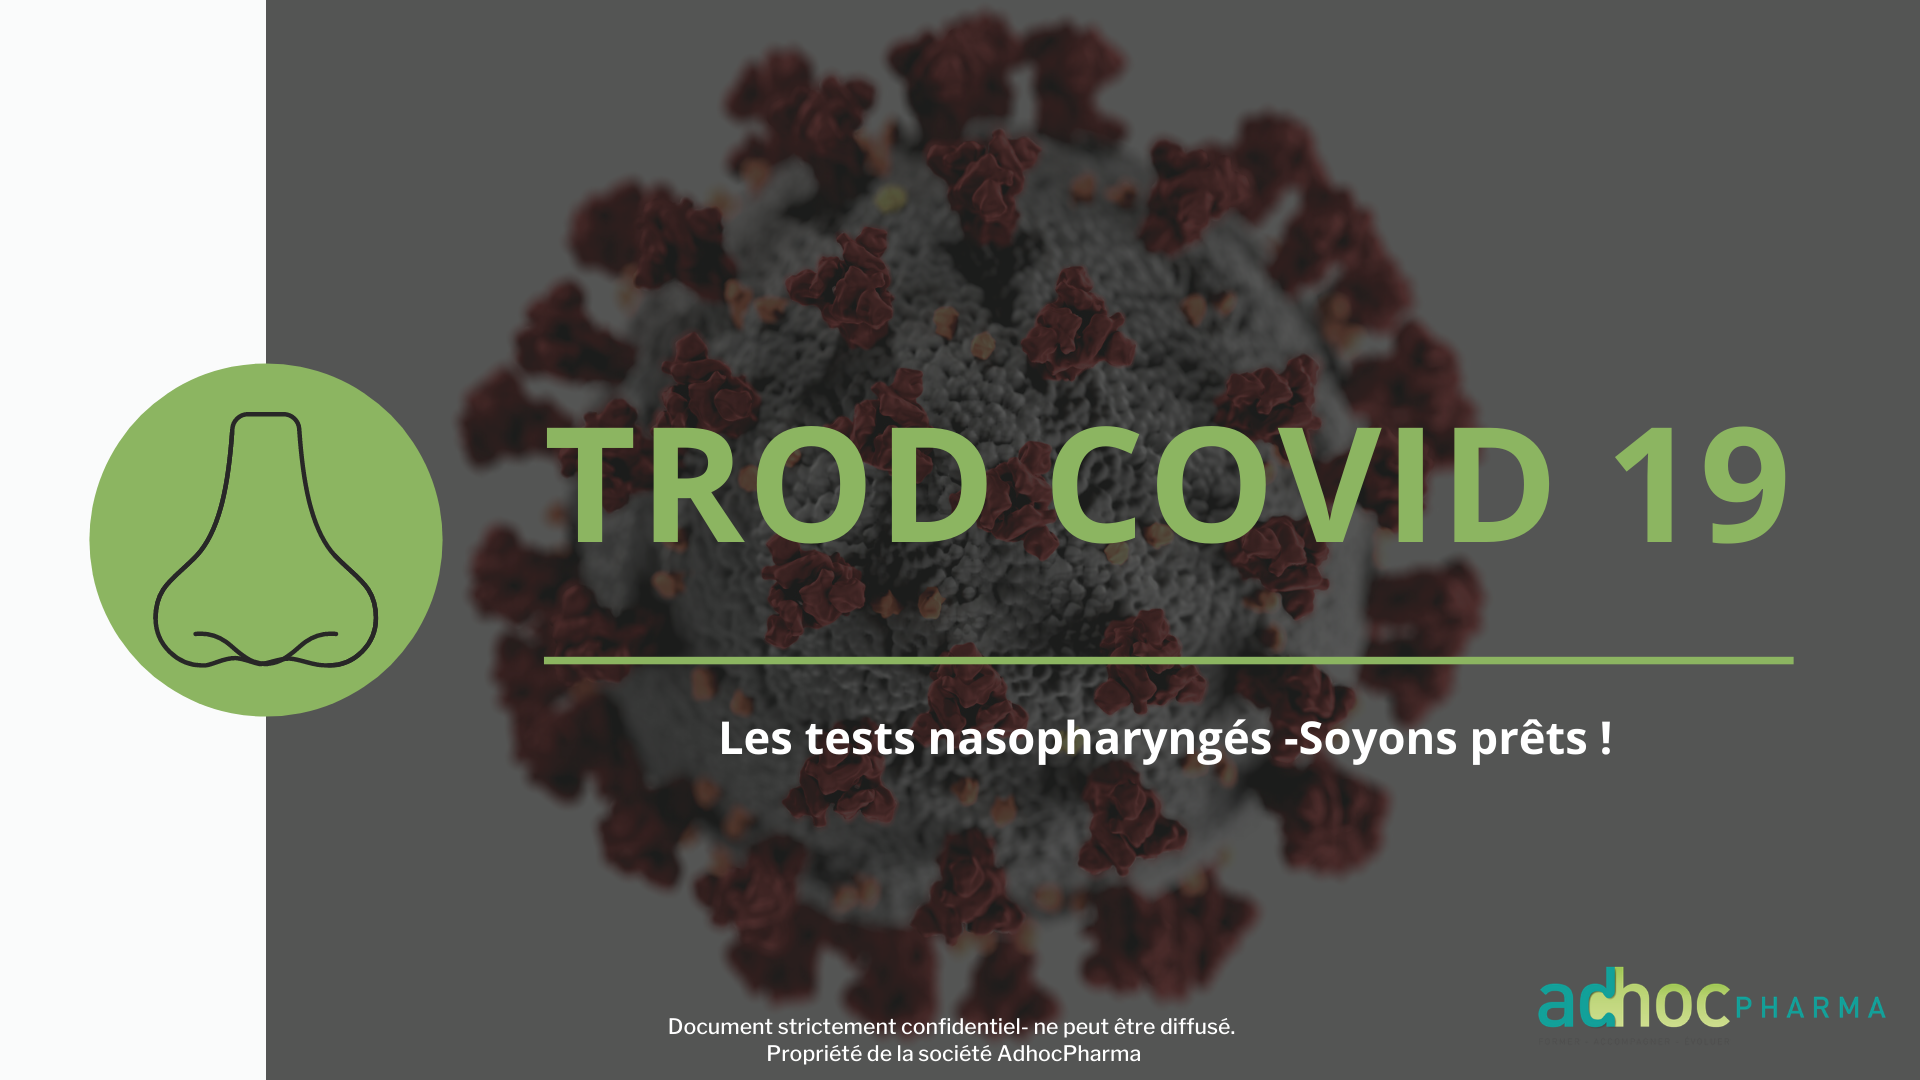 FORMATION TROD COVID 19 ANTIGENIQUE EN PHARMACIE